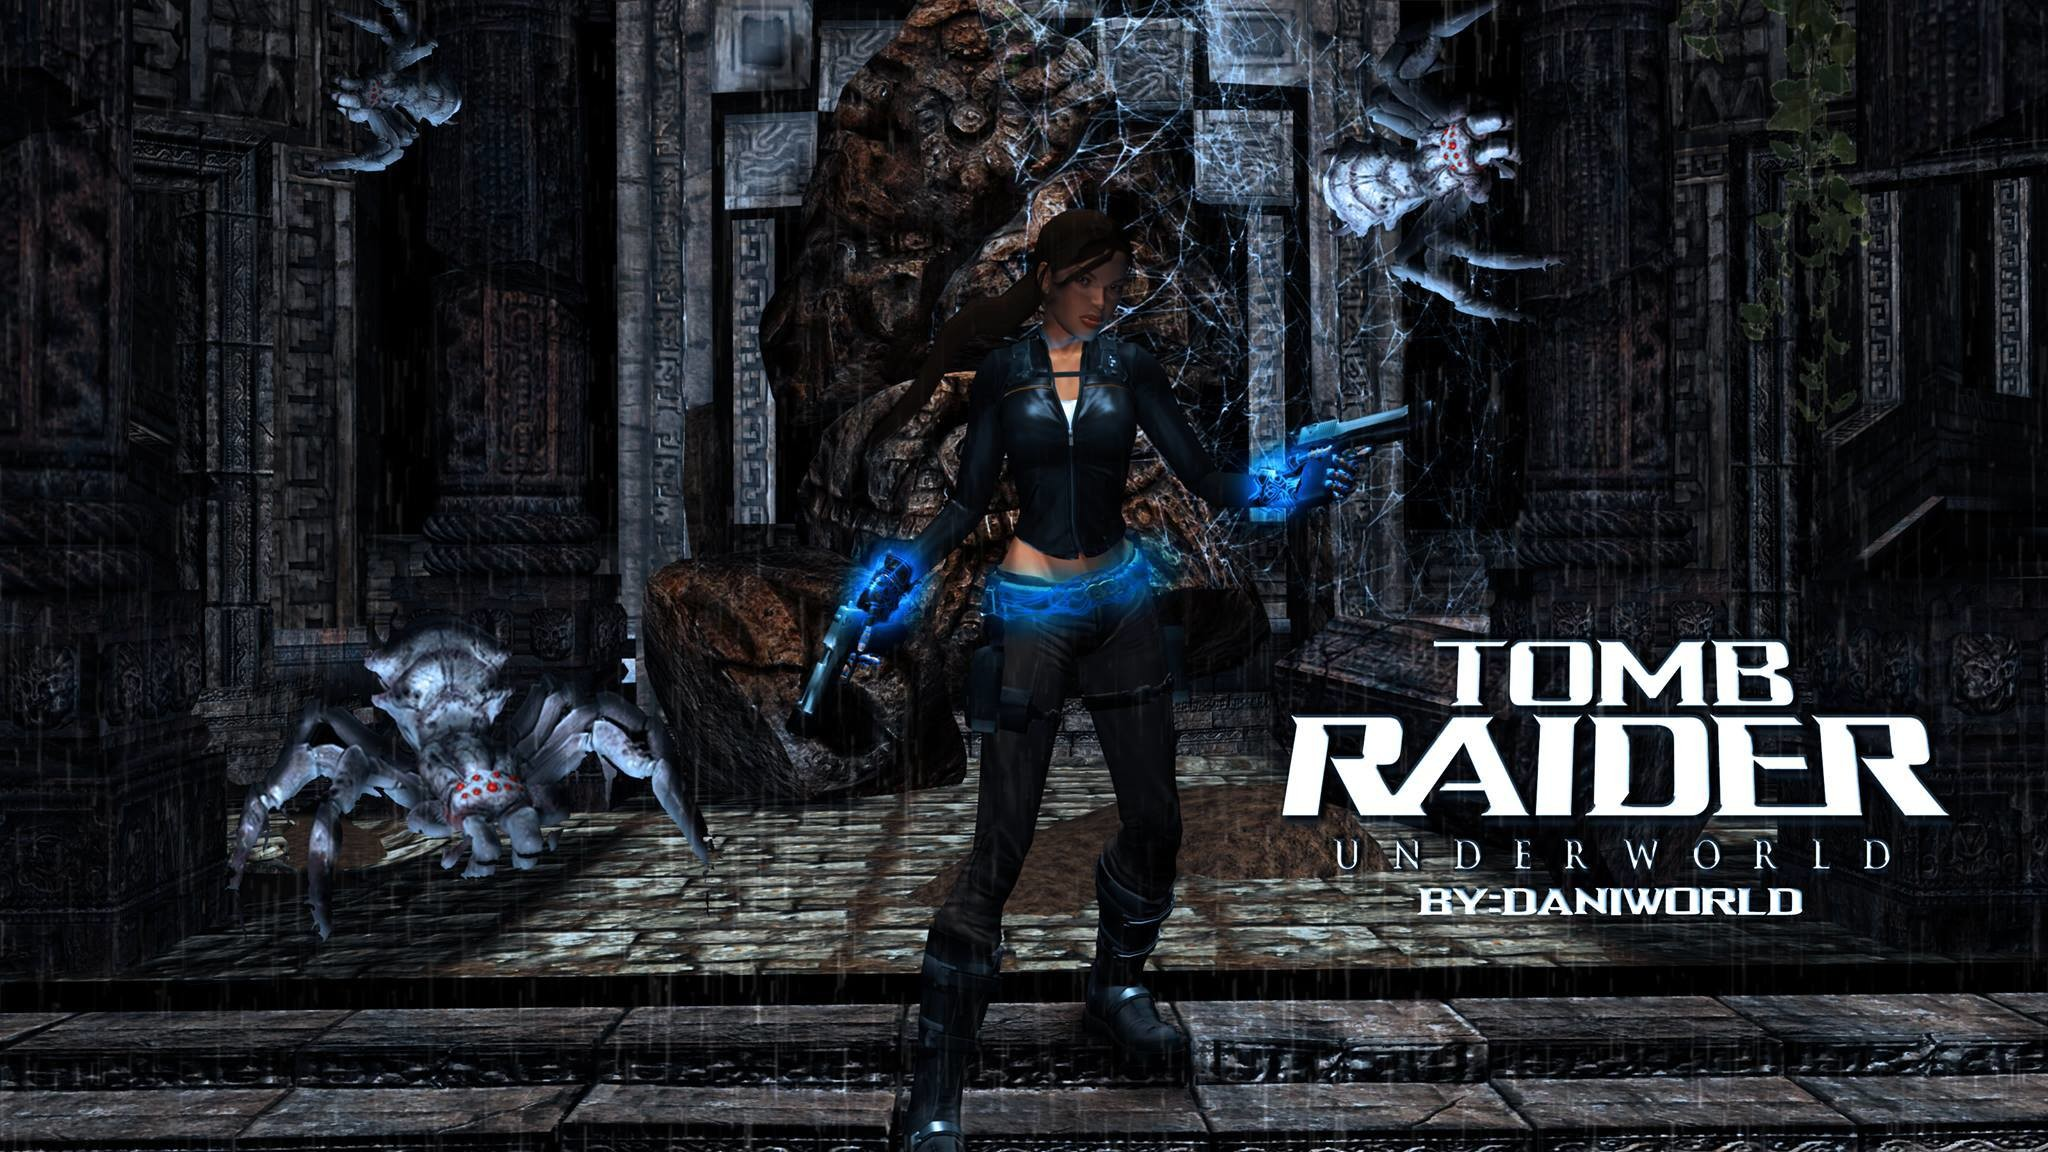 Res: 2048x1152, ... Tomb Raider Underworld Wallpaper - Southern Mexico by daniworld